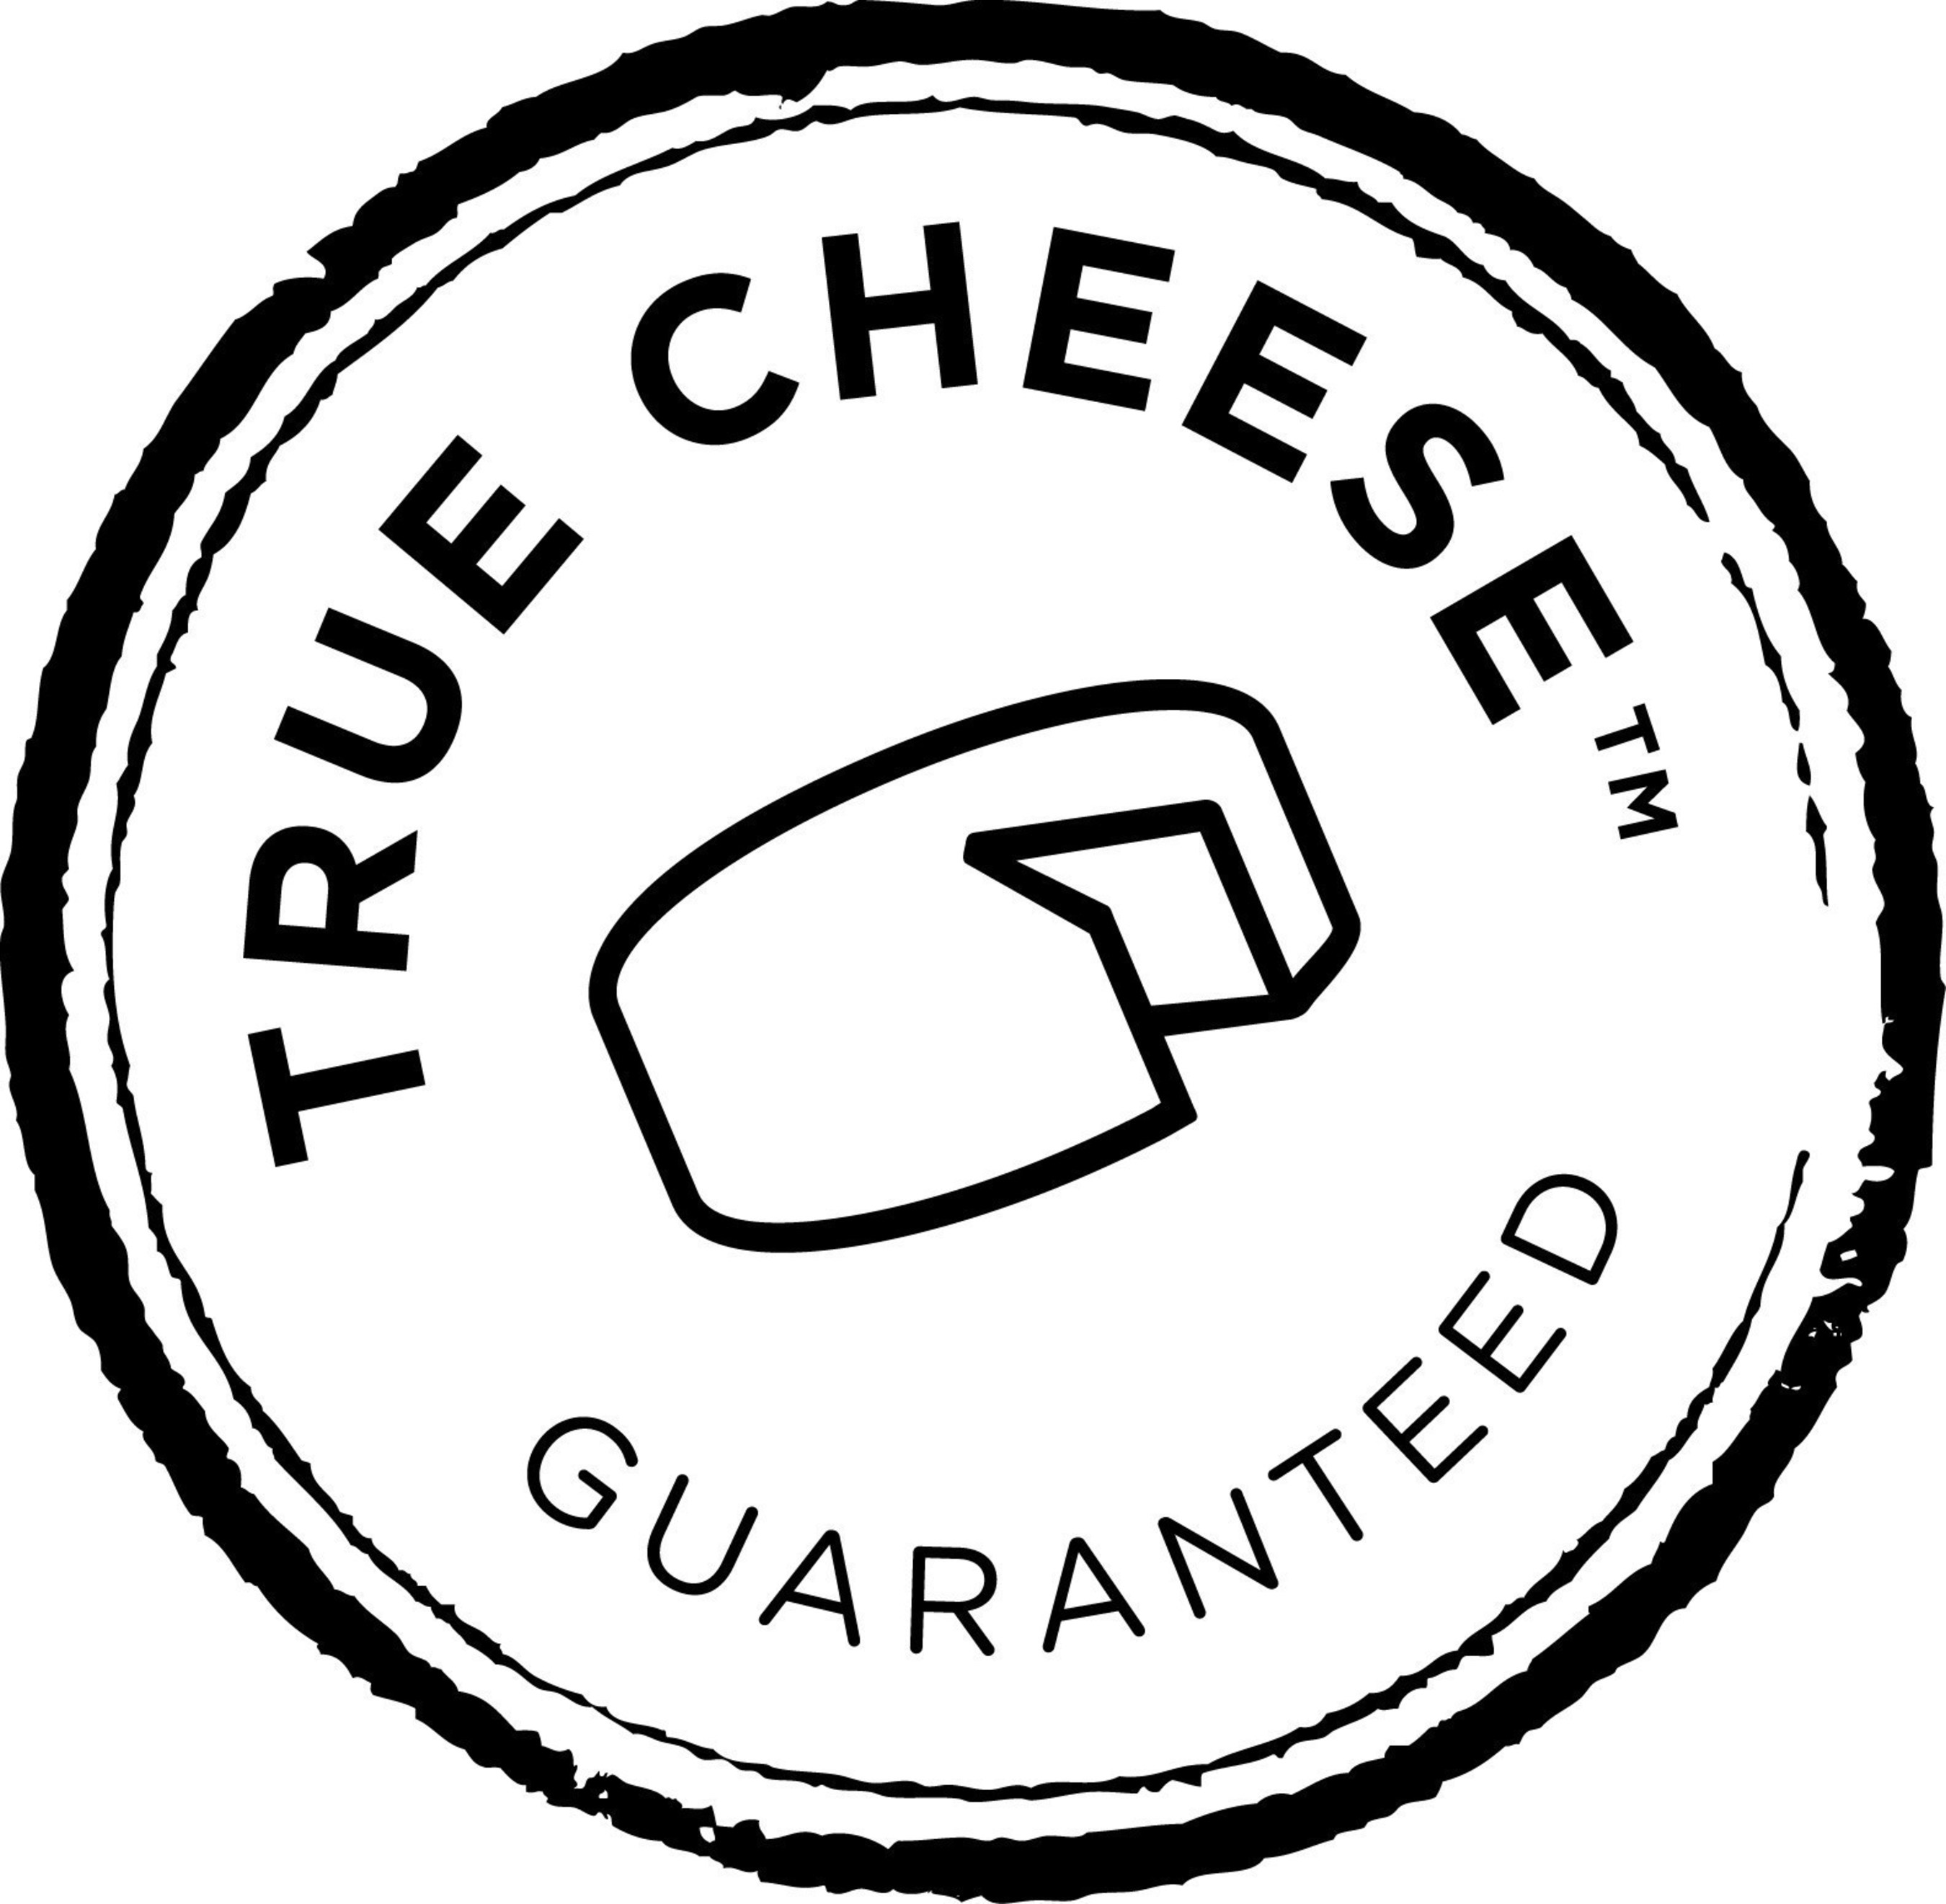 In response to decades of increased incidents of adulteration and fraud in the domestic Italian hard cheese category, U.S. hard cheese leader Arthur Schuman Inc. (ASI) today announced the creation of the industry's first trust mark for quality assurance.